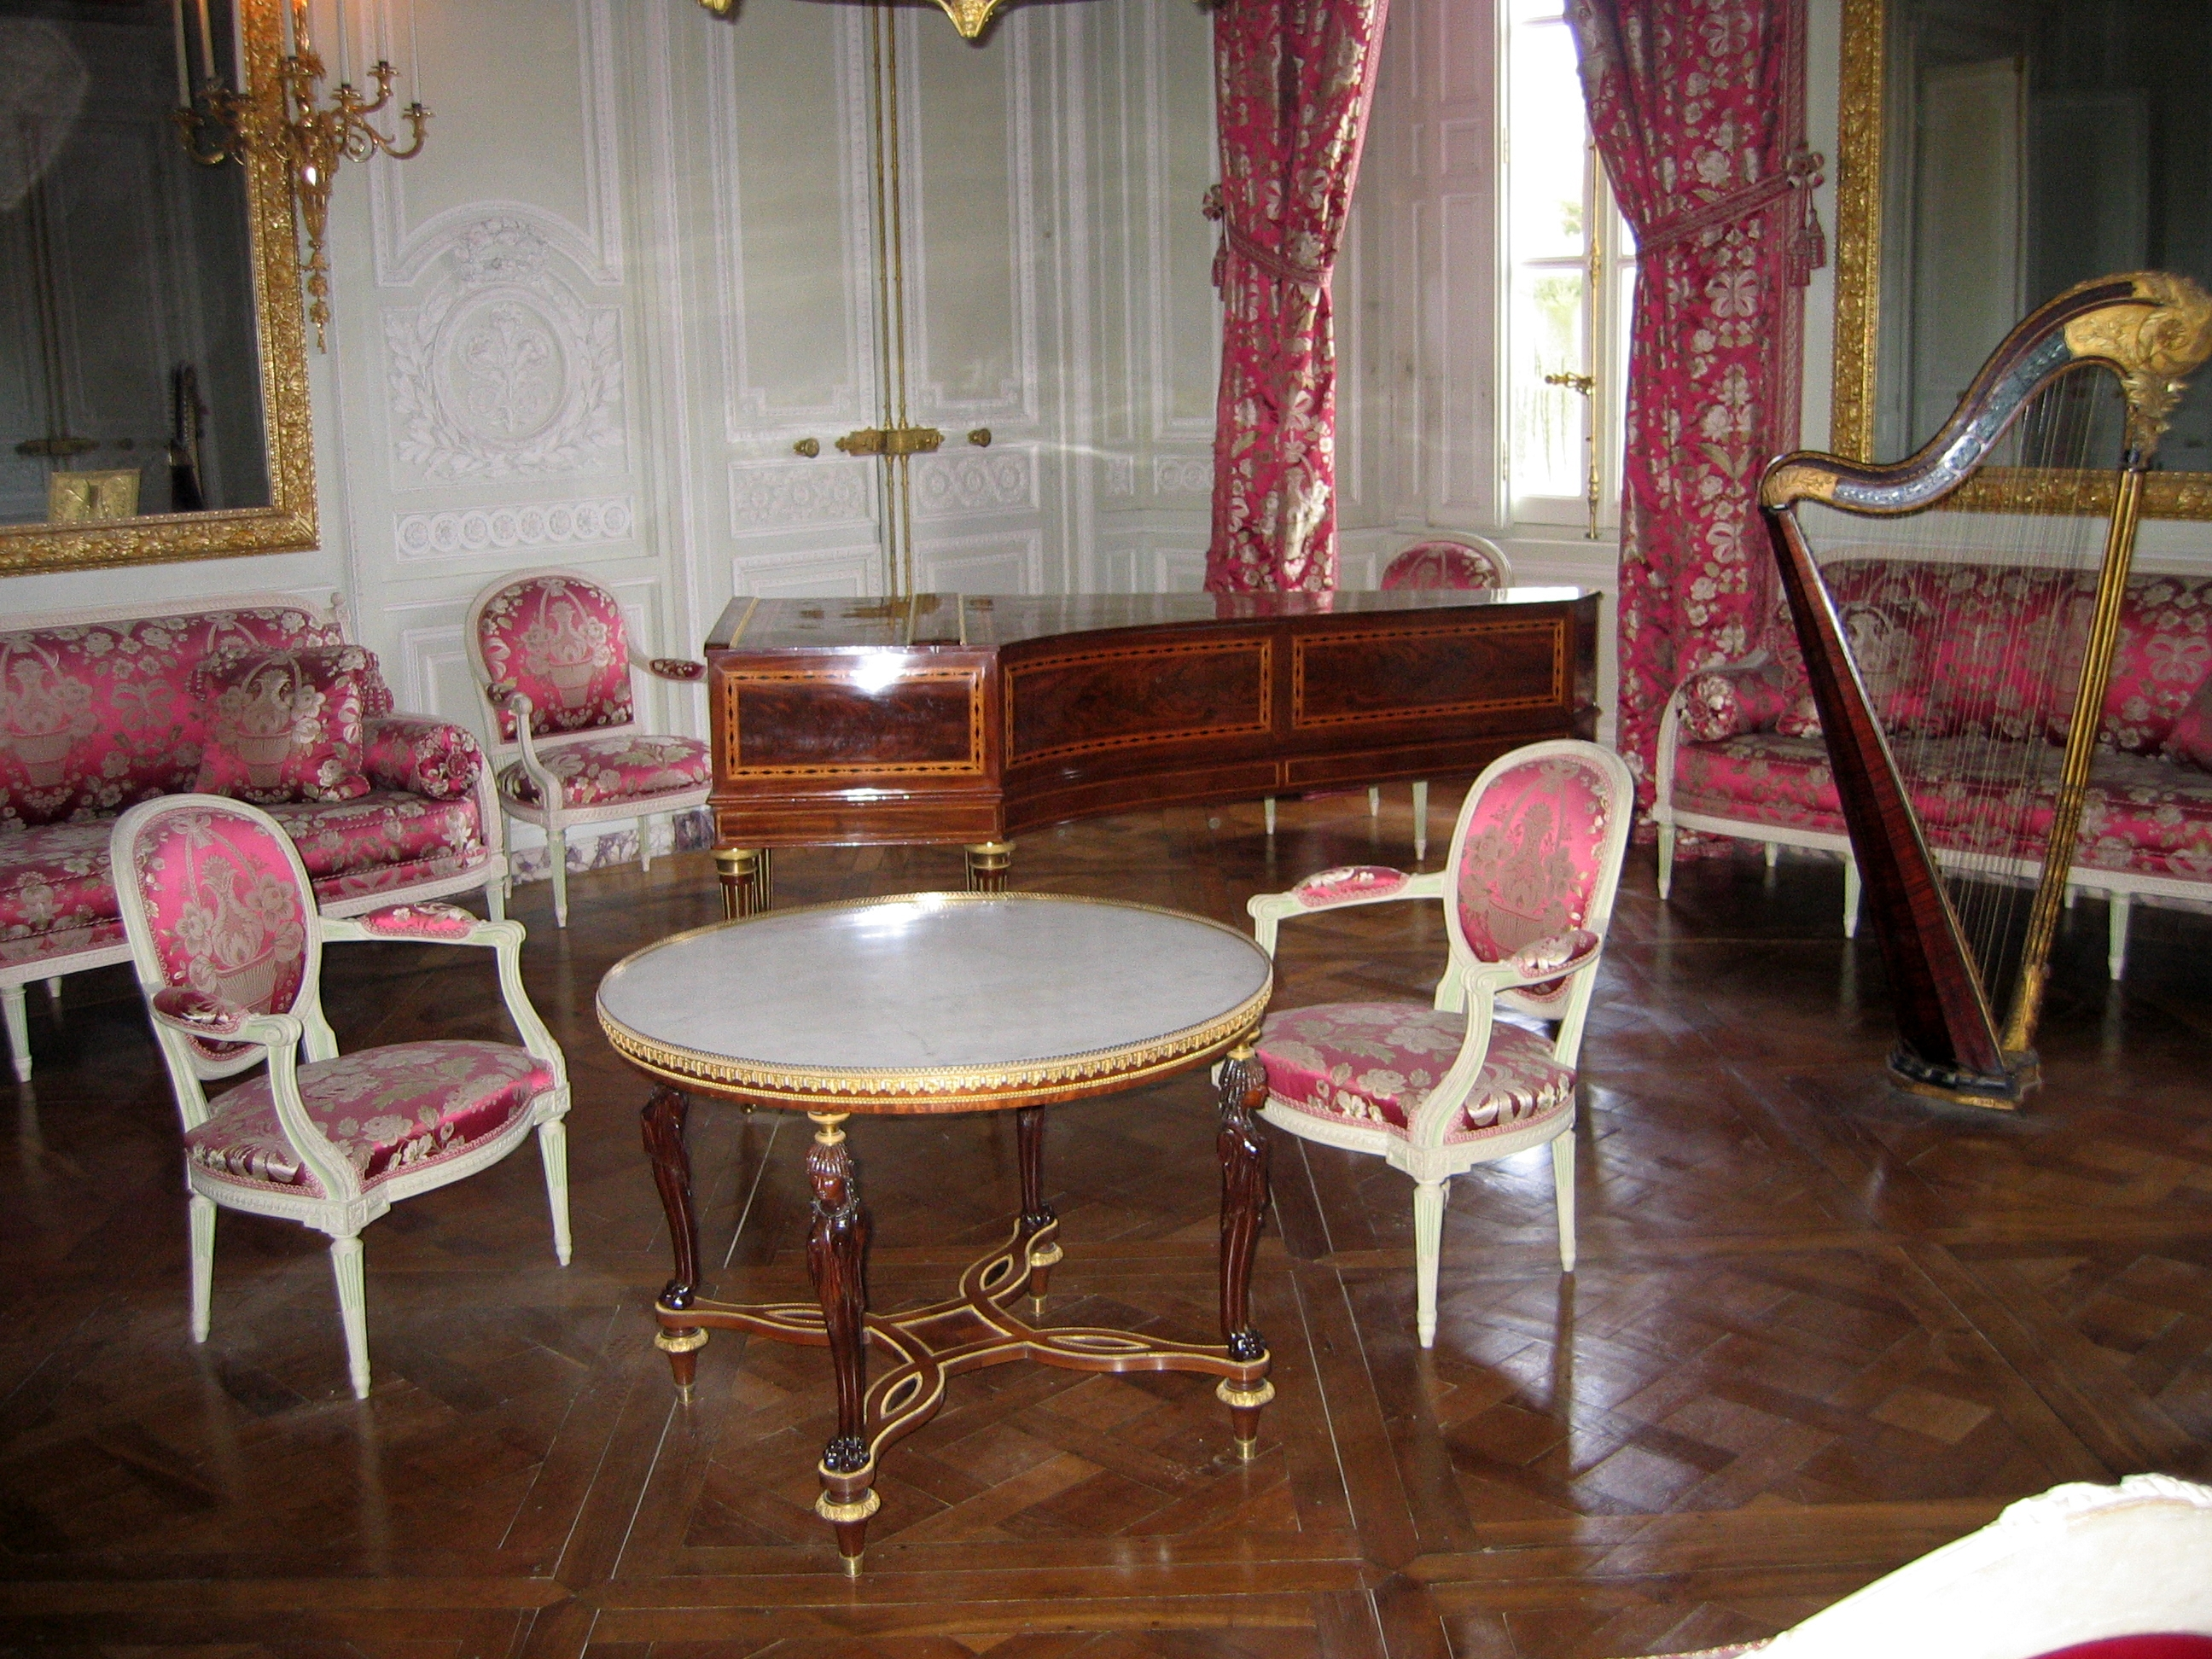 file un salon dans le petit trianon jpg wikimedia commons. Black Bedroom Furniture Sets. Home Design Ideas